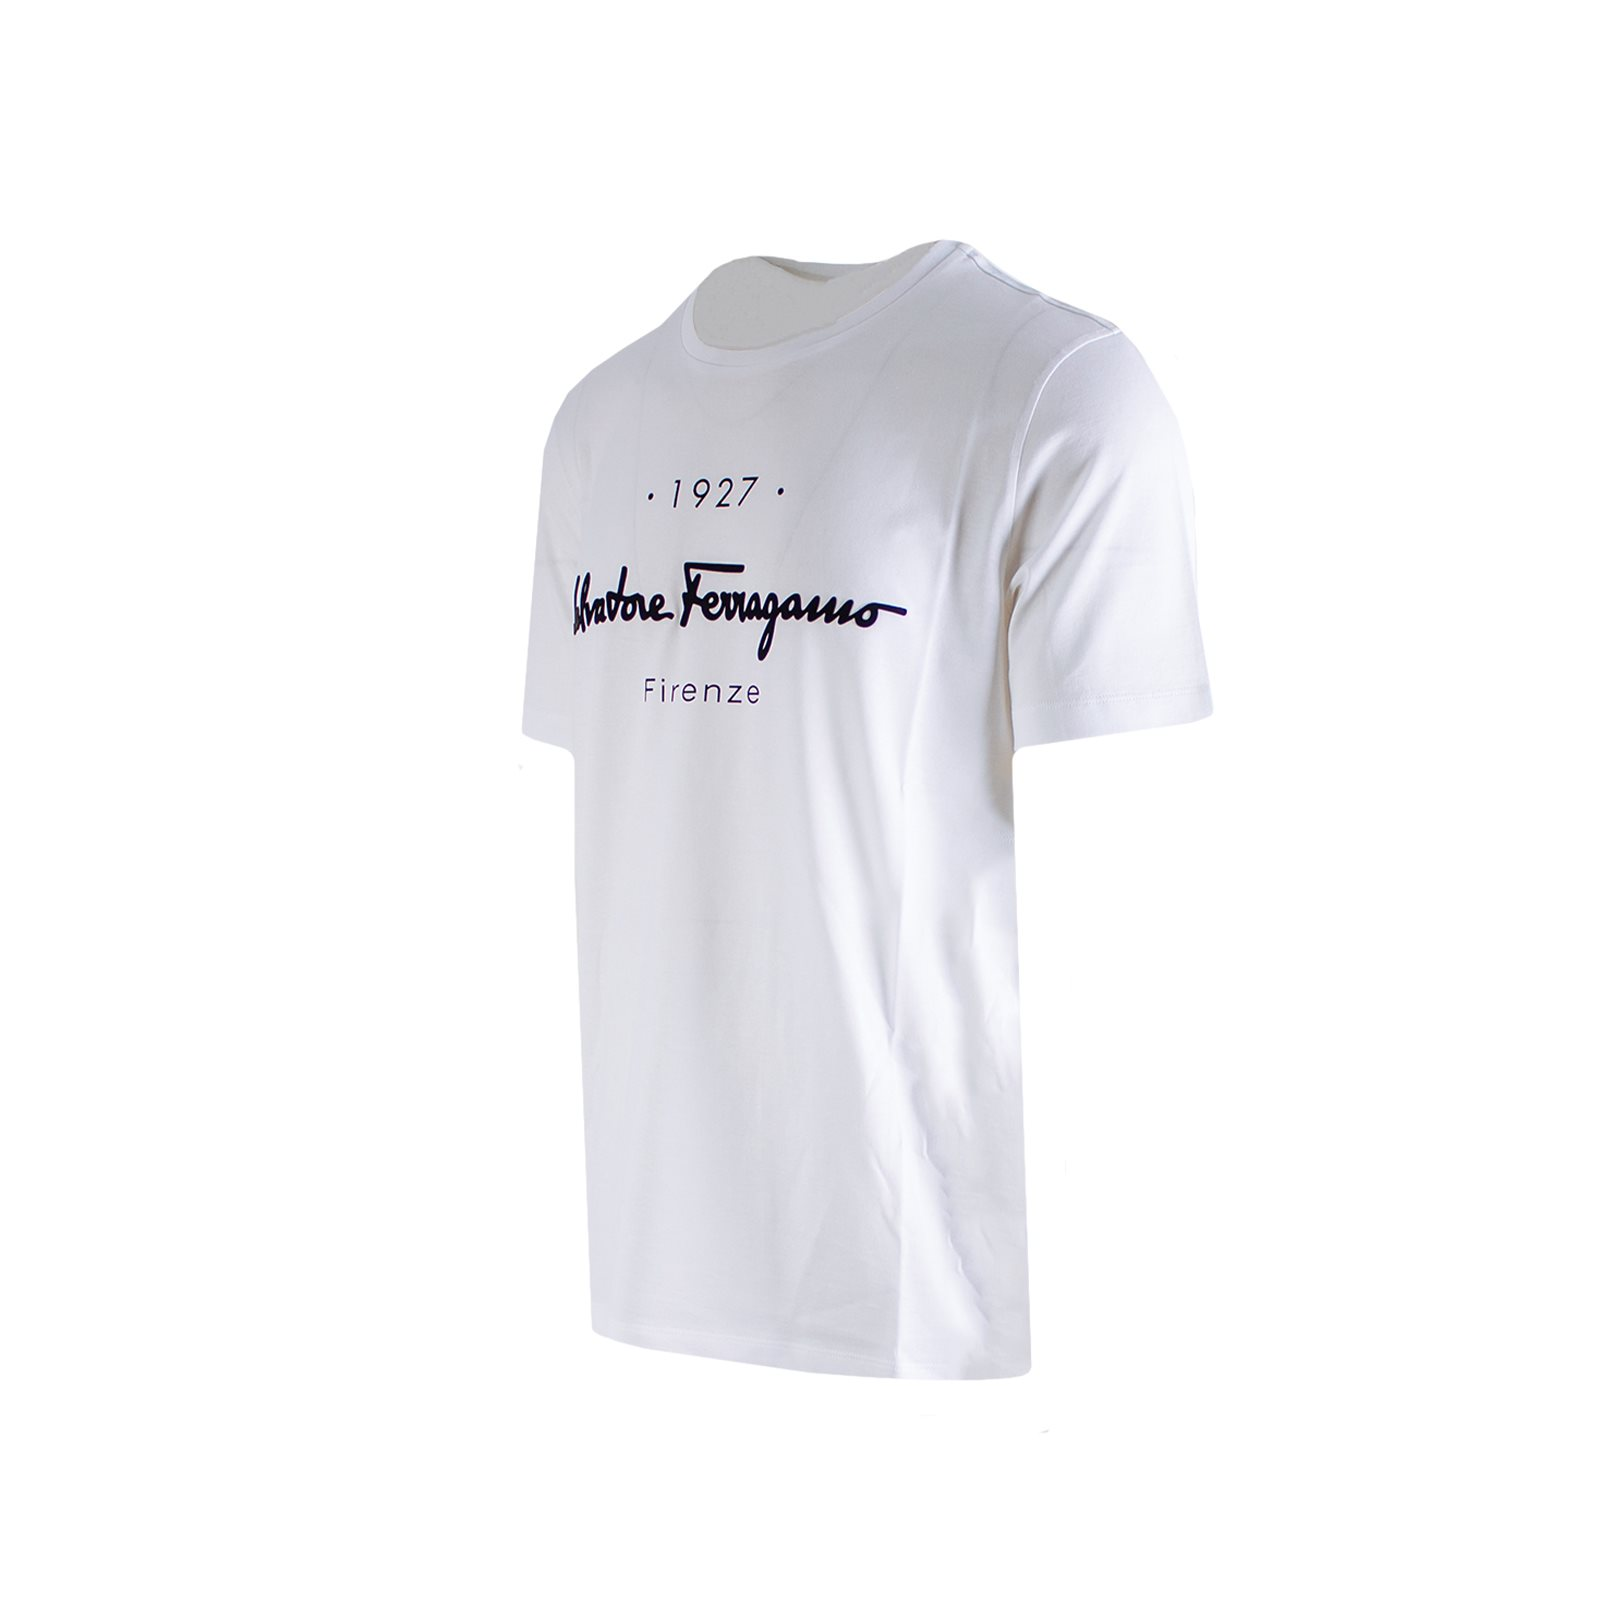 Salvatore Ferregamo T-shirt  2